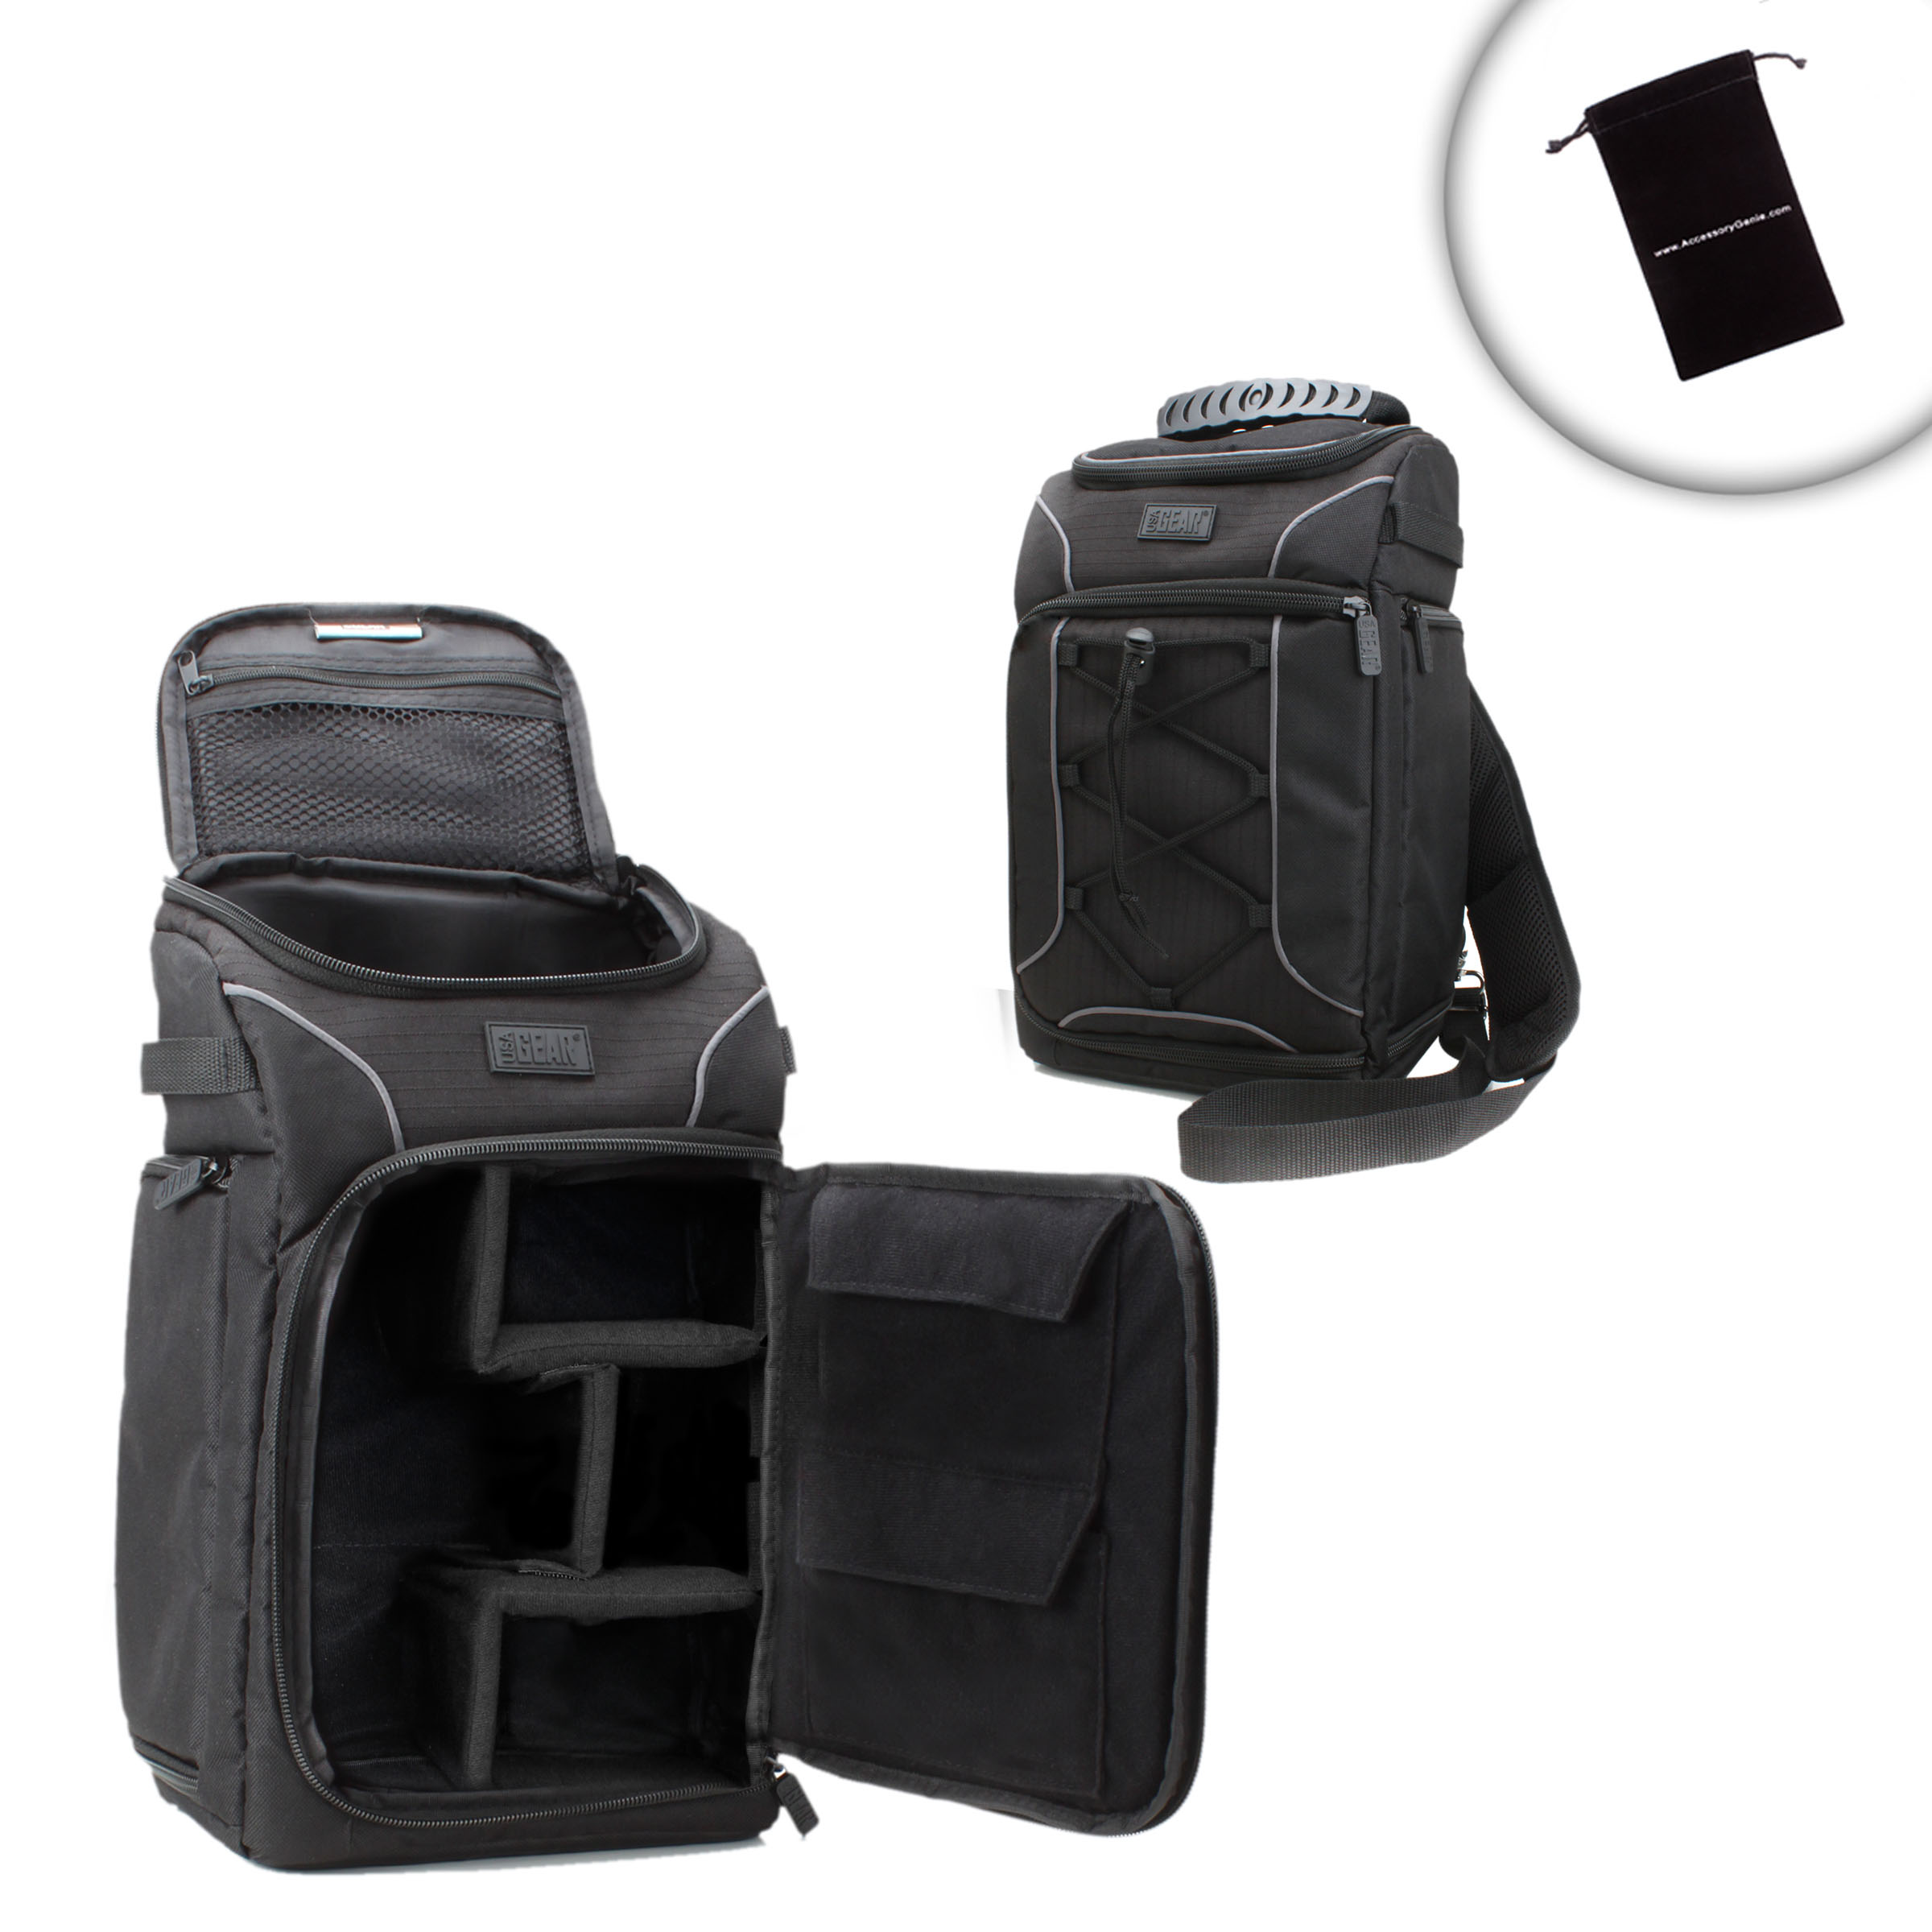 79cb869aaea Details about USA Gear Custom Interior DSLR Camera Shoulder Sling Backpack  with Rain Cover